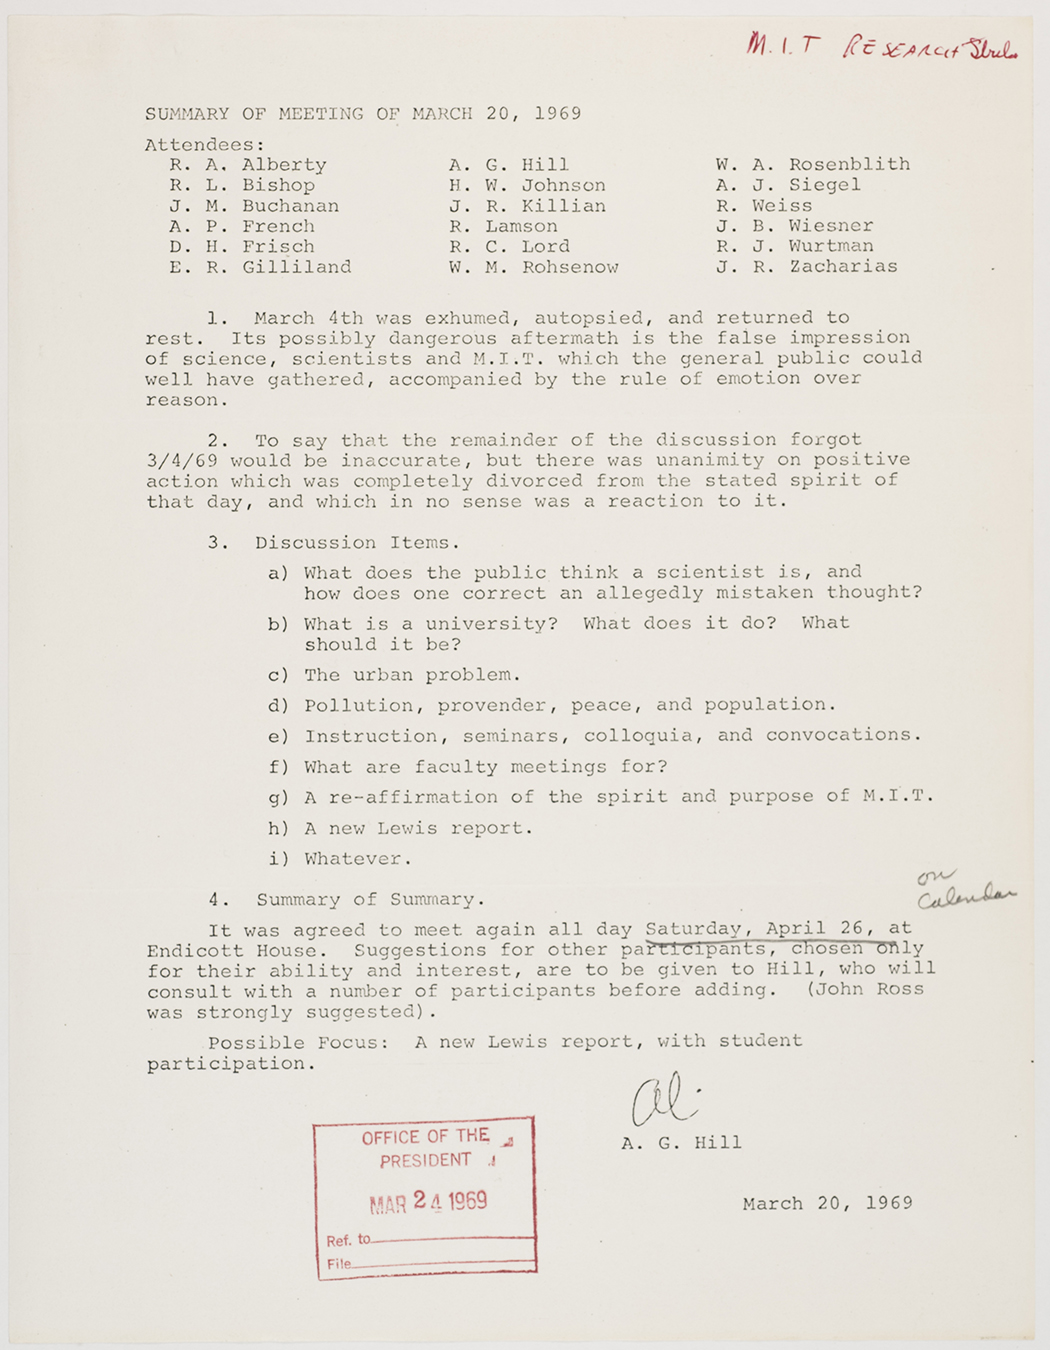 Summary of meeting of March 20, 1969, AC-0118, Box 107.